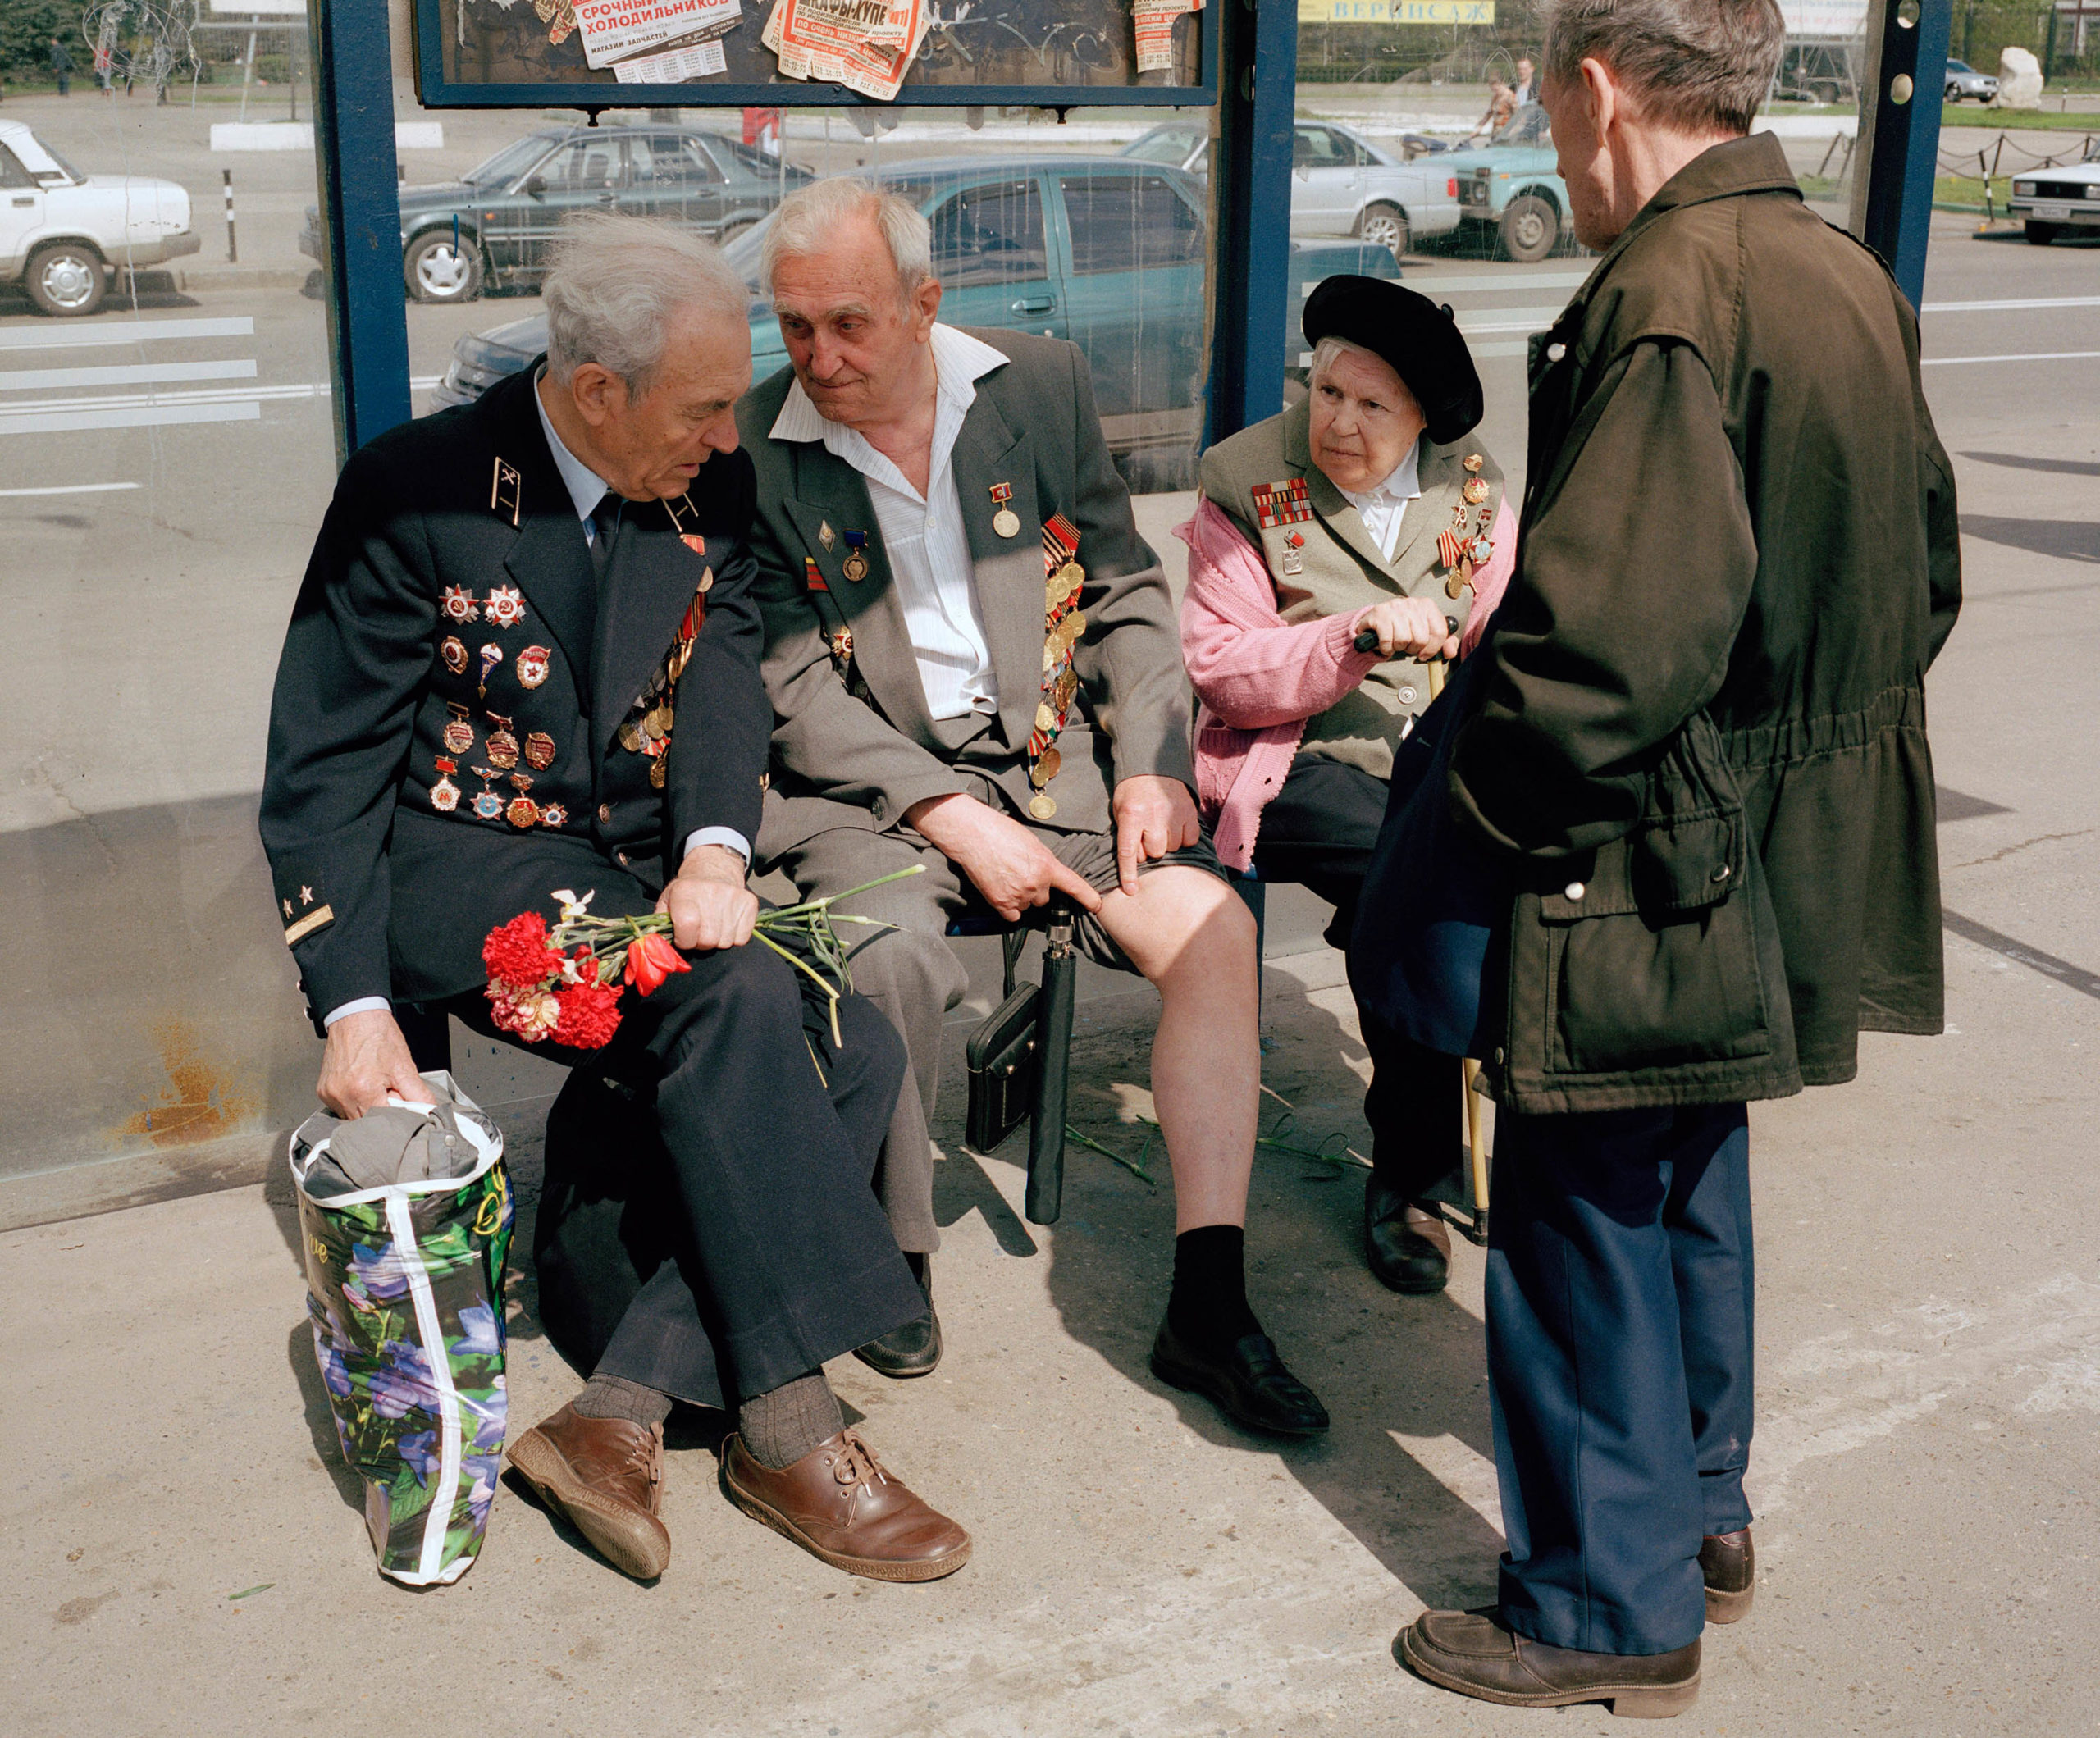 Russia, Moscow. Victory Day. War veteran shows his old war wounds.